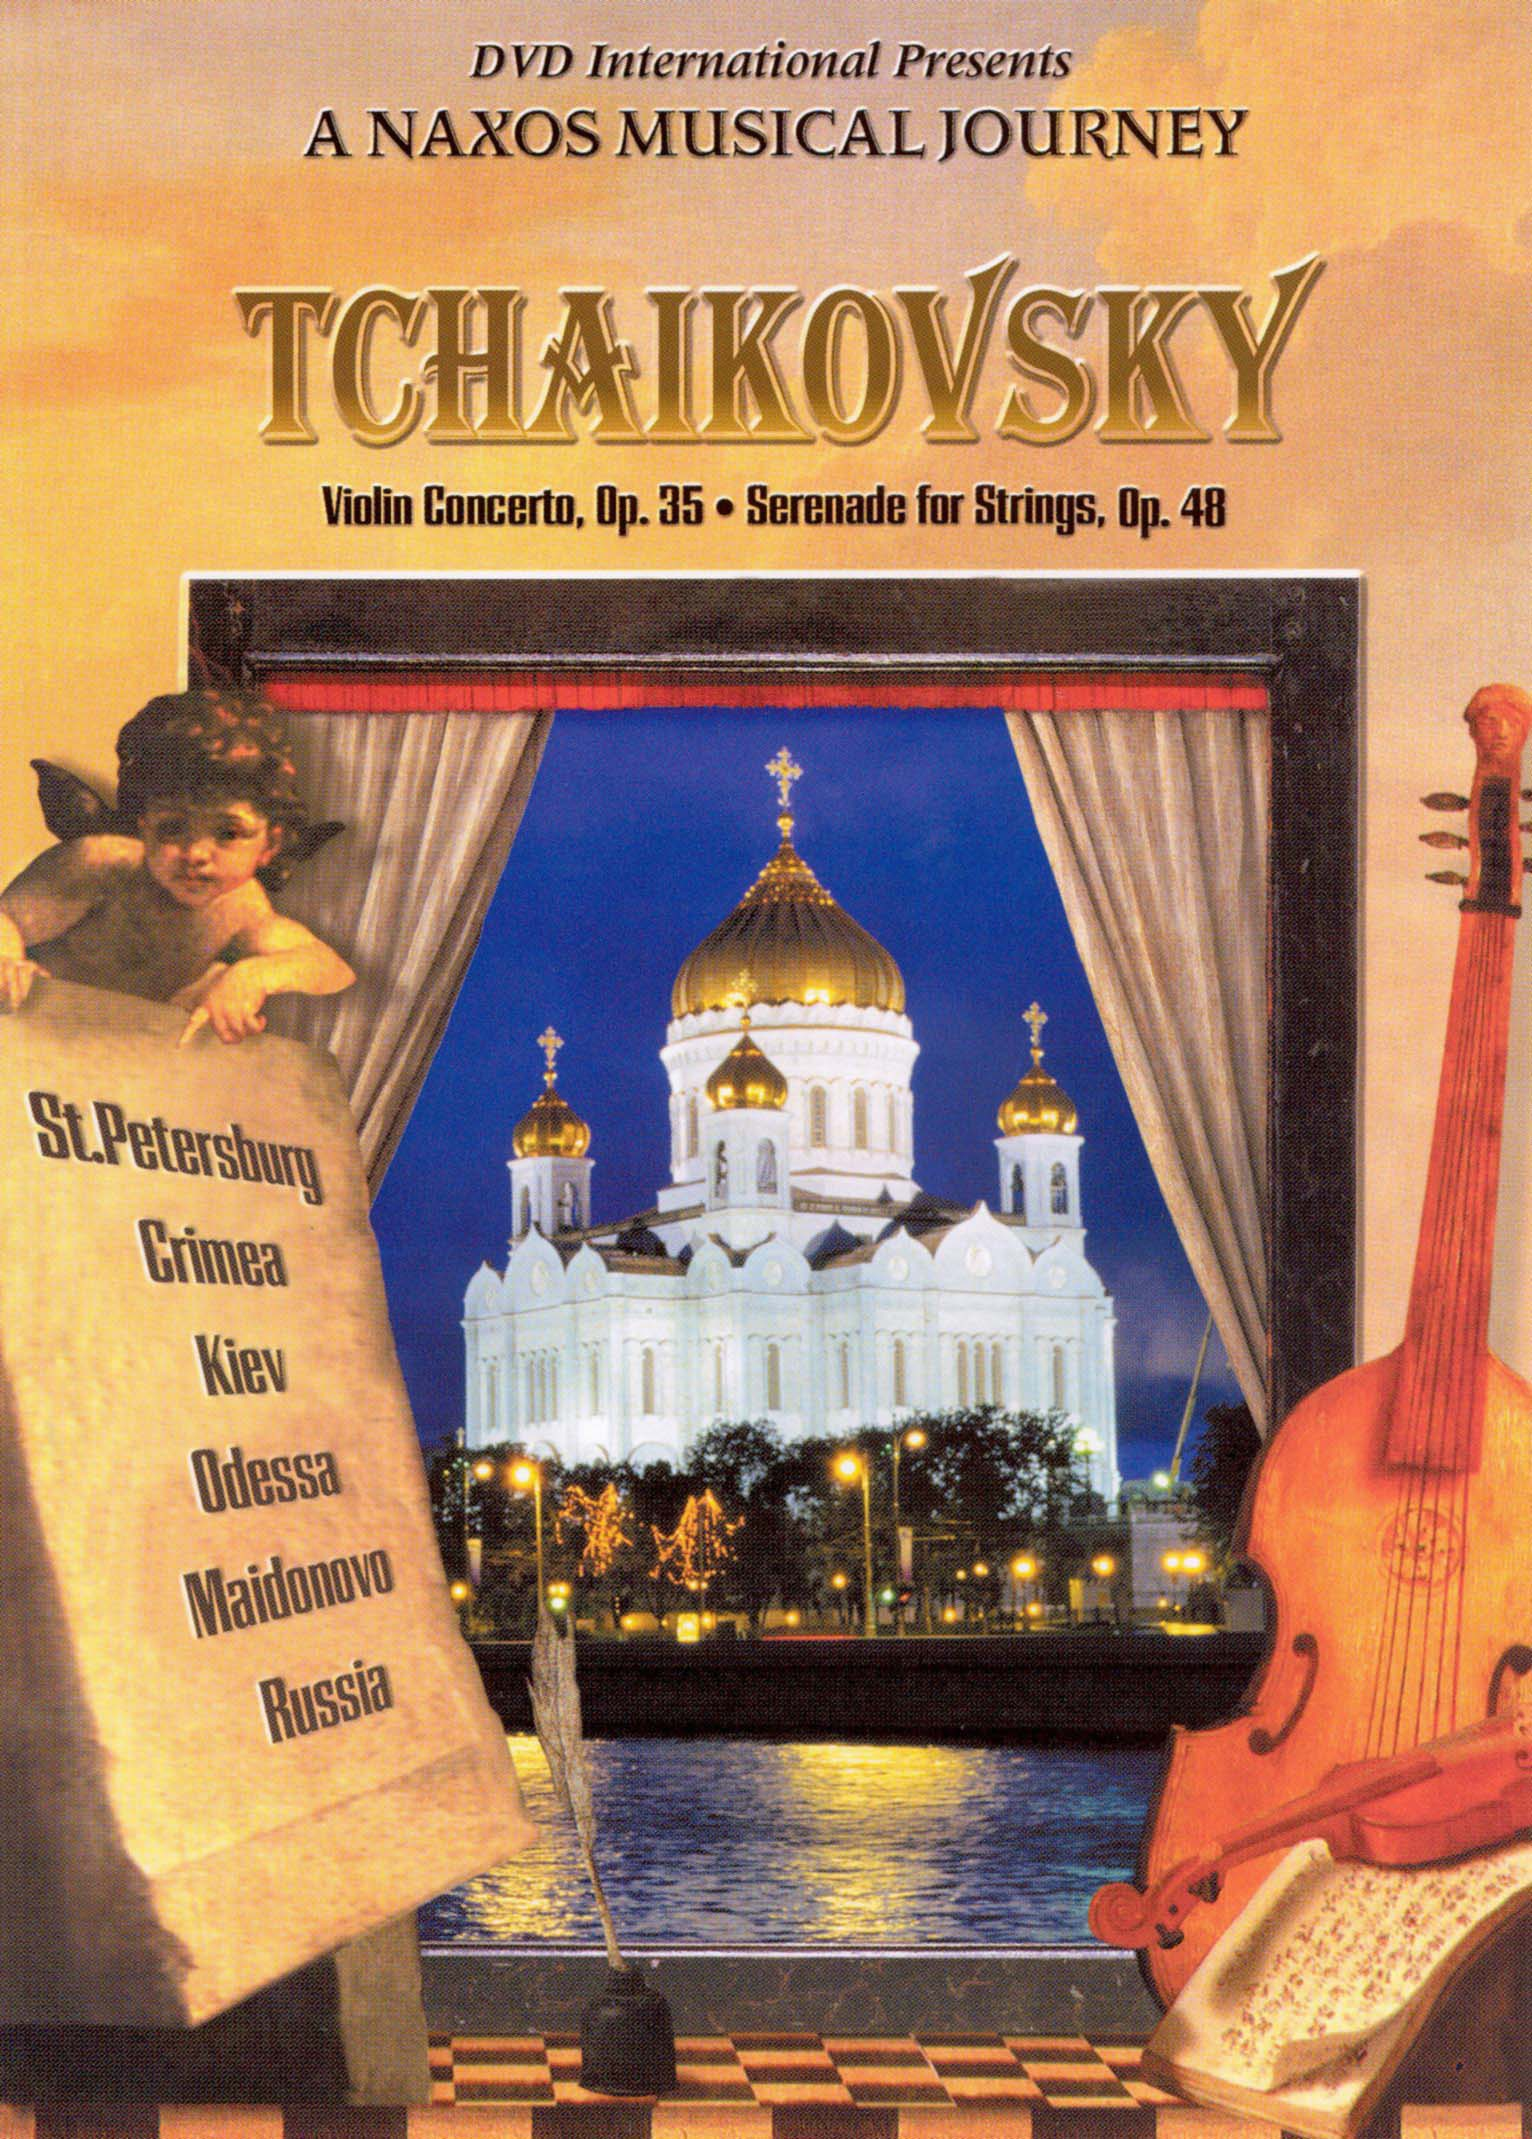 A Naxos Musical Journey: Tchaikovsky - Violin Concerto, Op. 35/Serenade for Strings, Op. 48